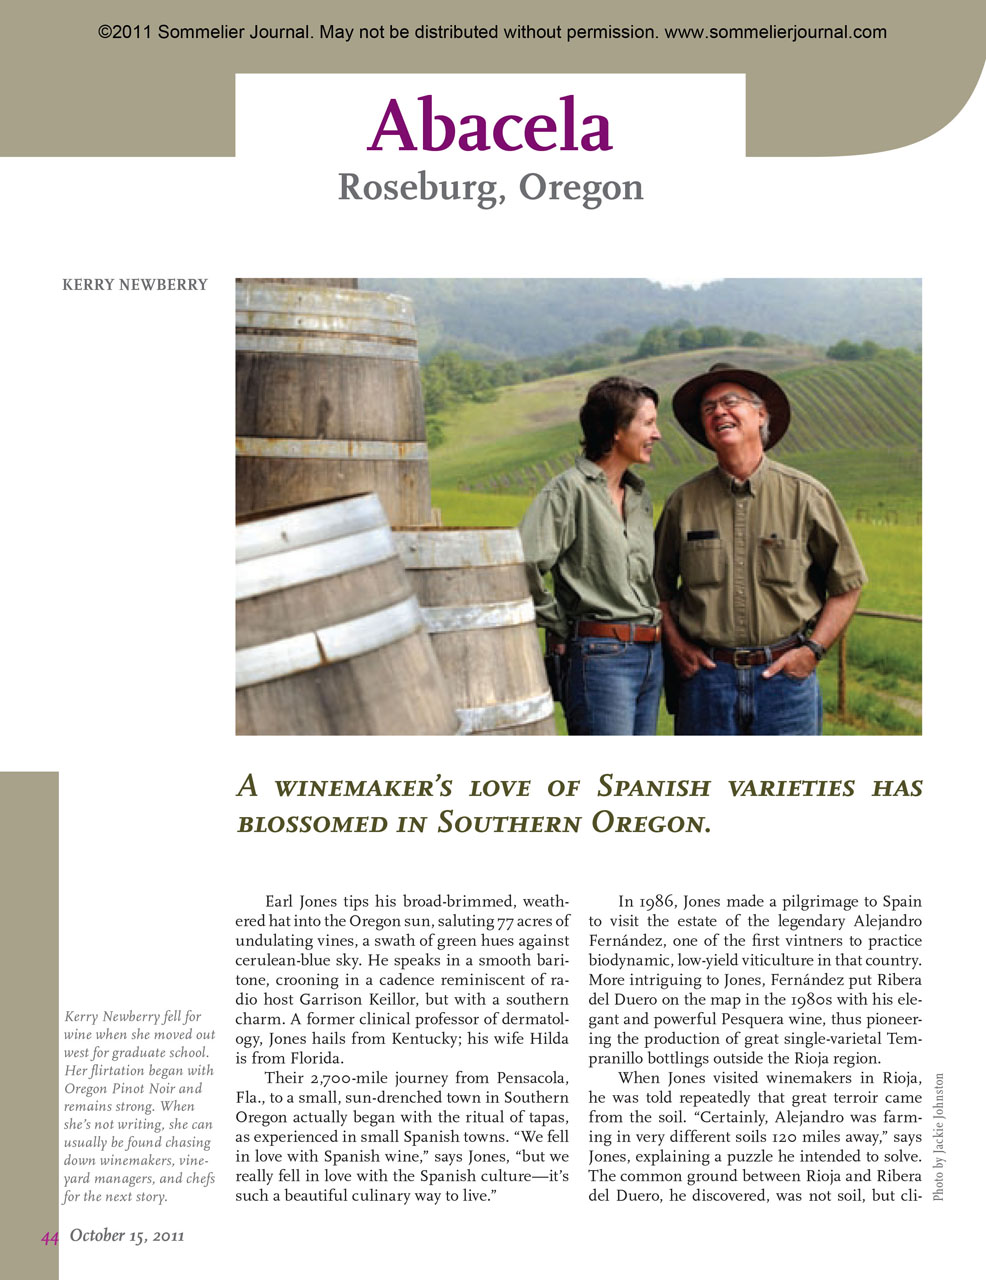 Winery Spotlight: Abacela, Roseburg, Oregon